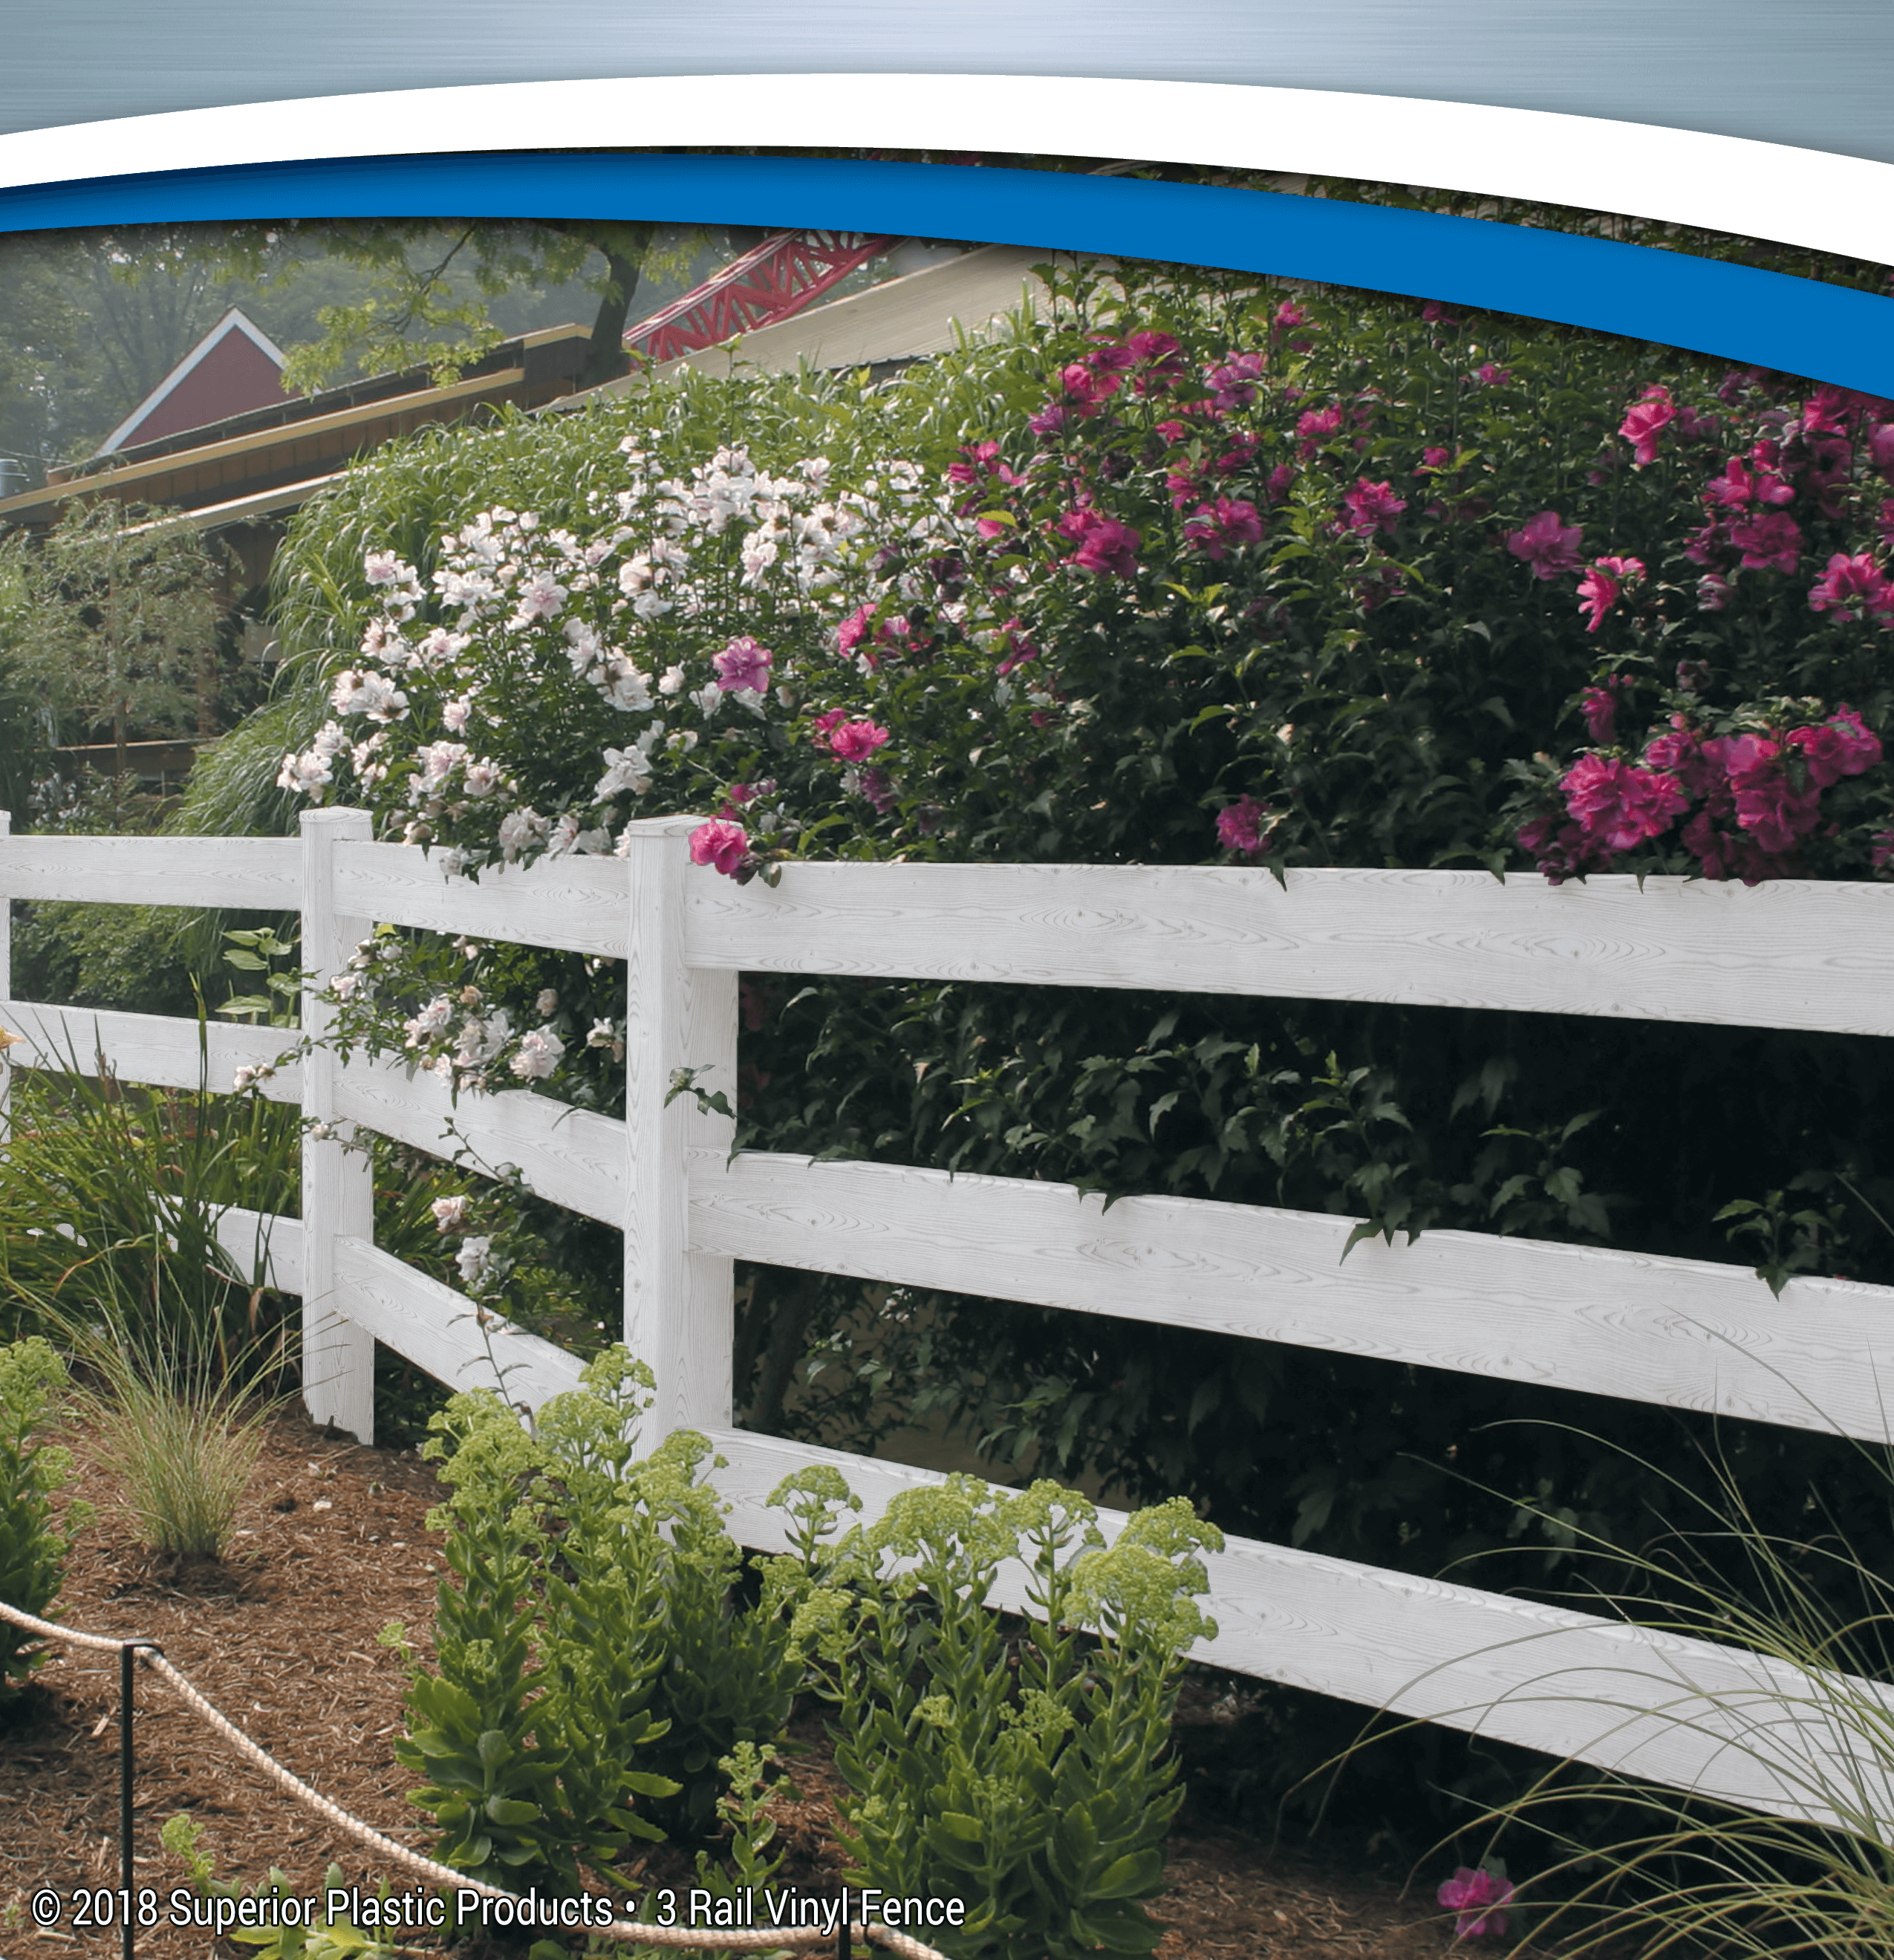 3 Rail Vinyl Fence - Superior Plastic Products